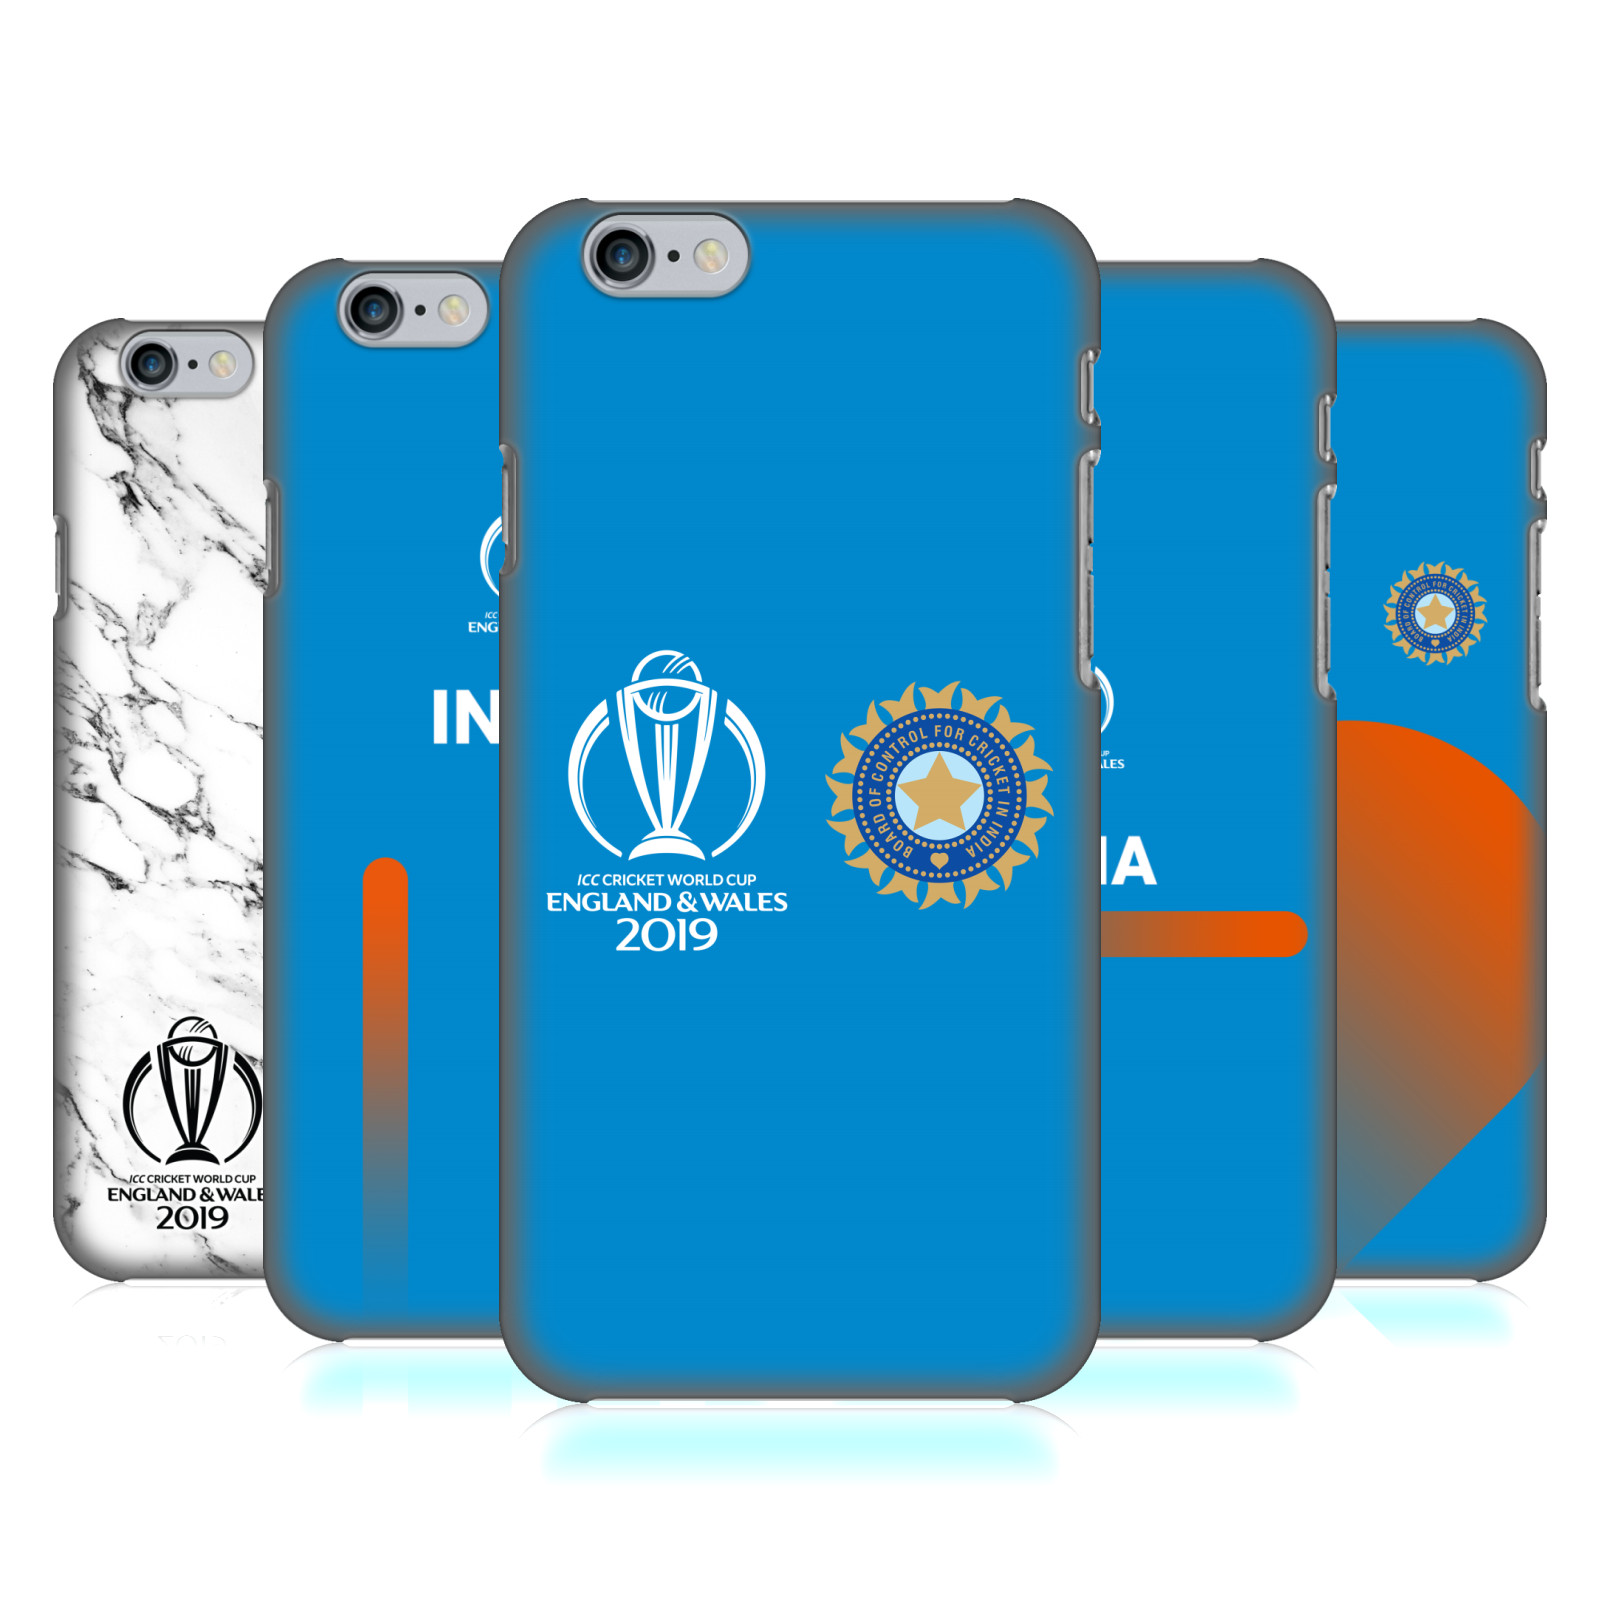 ICC India Phone and Tablet cases